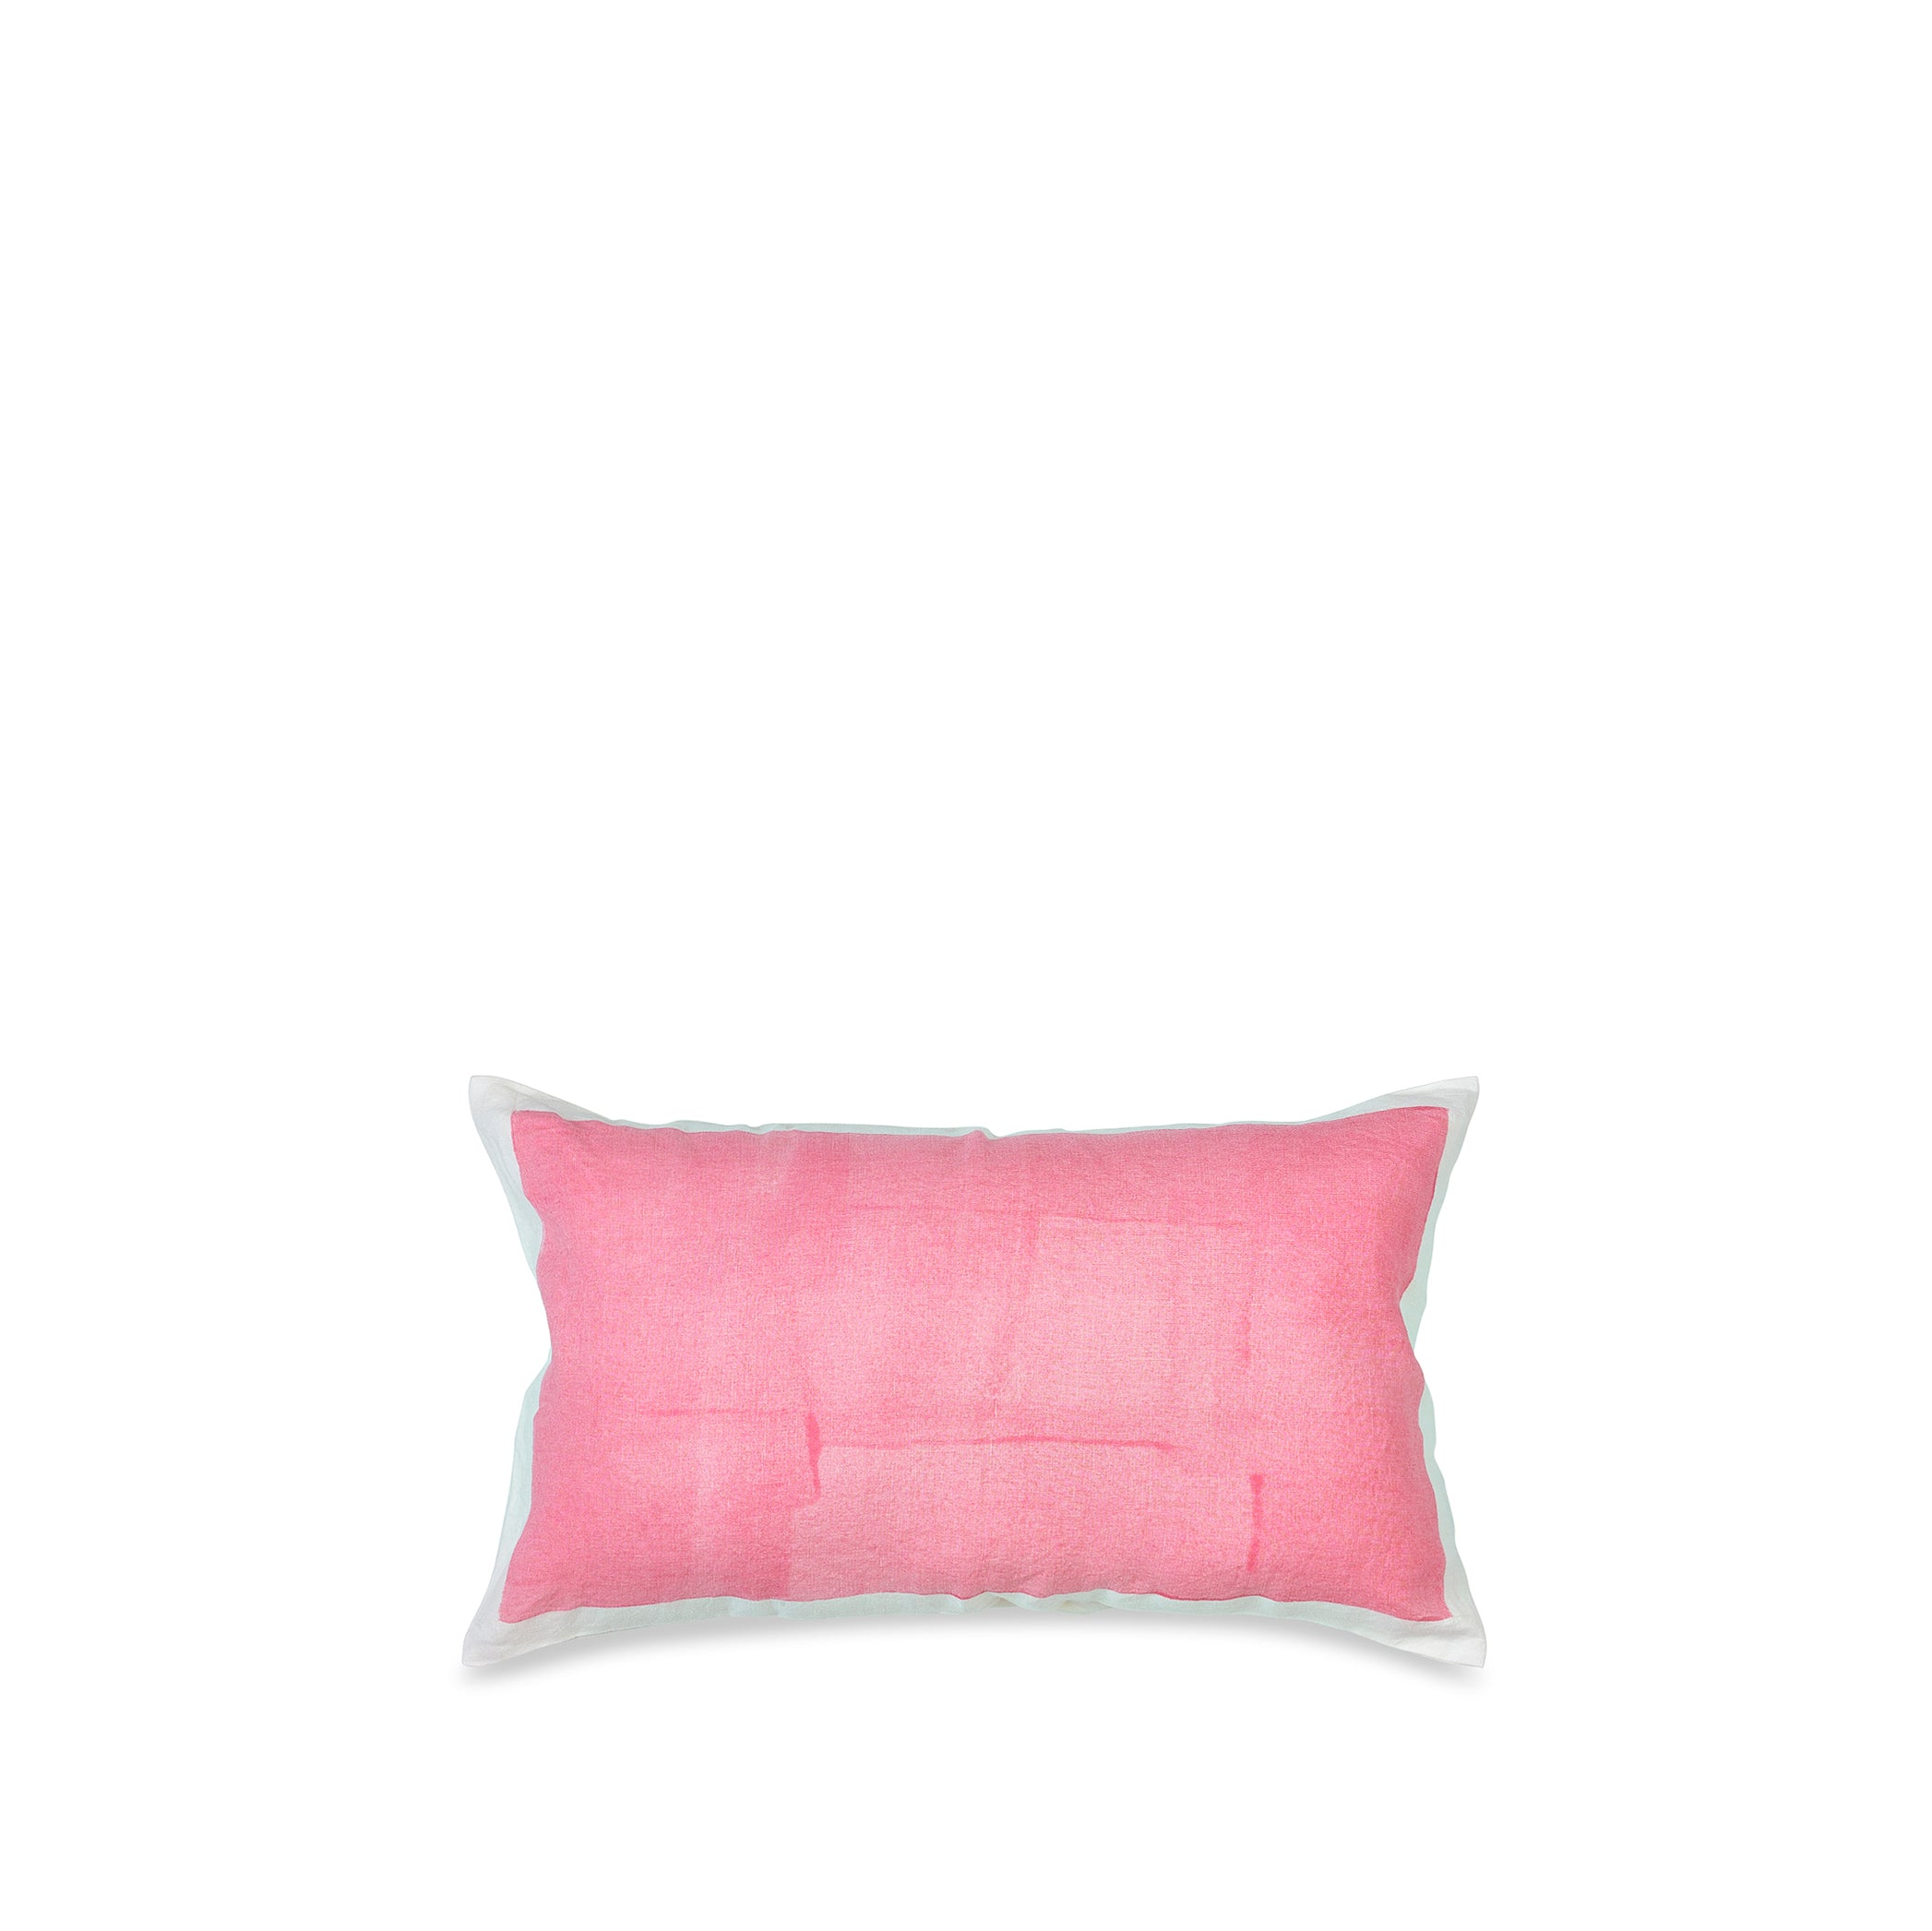 Hand Painted Linen Cushion in Rose Pink, 50cm x 30cm